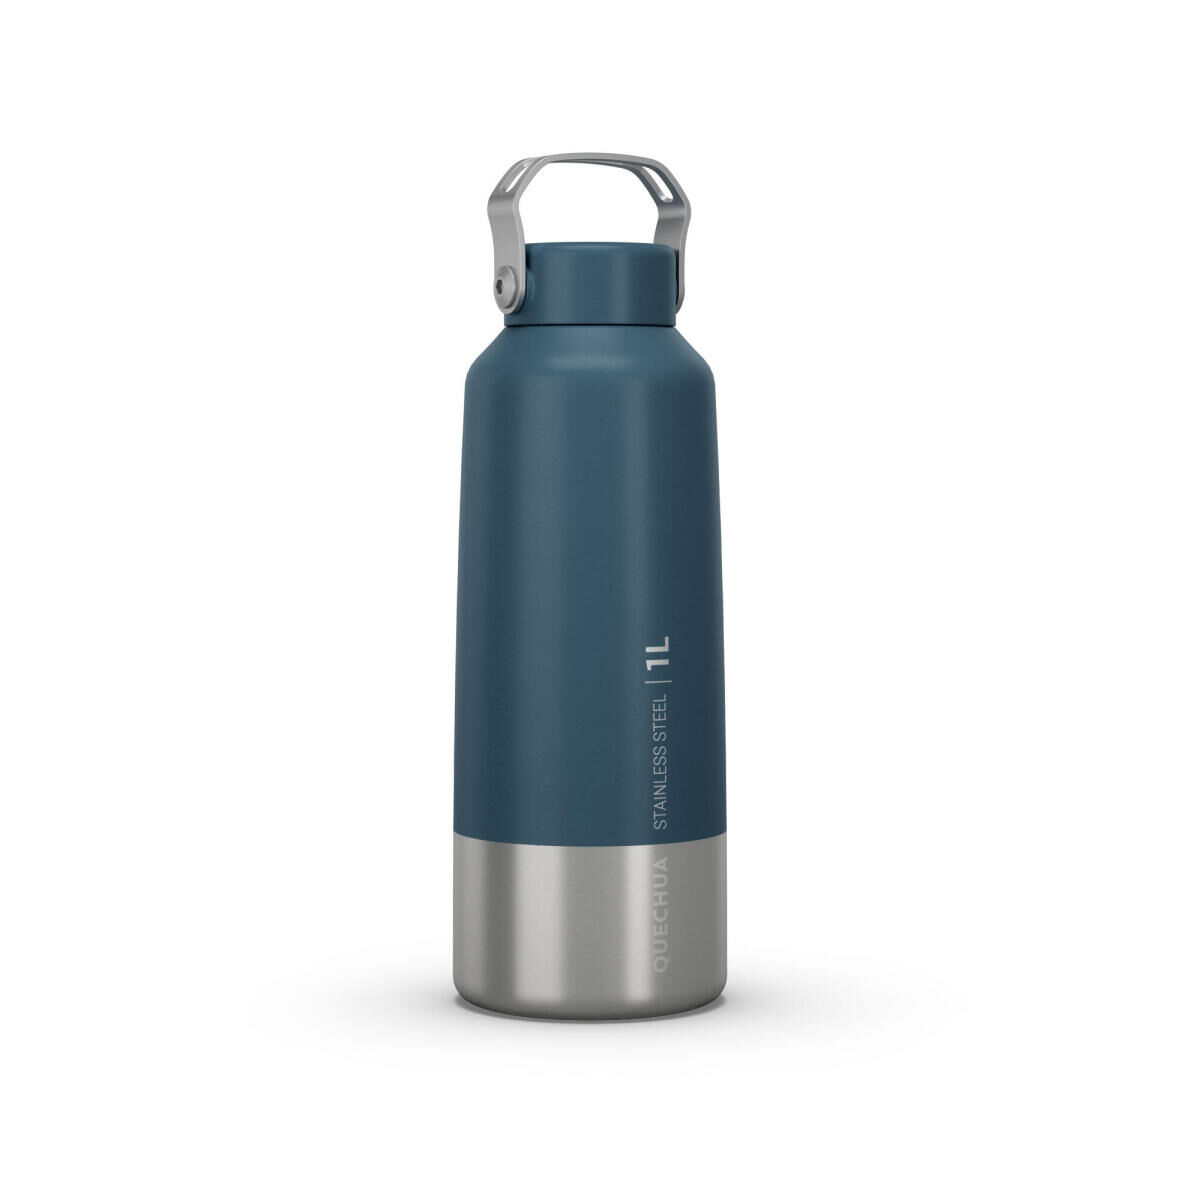 How do you stay hydrated when out hiking - water bottle